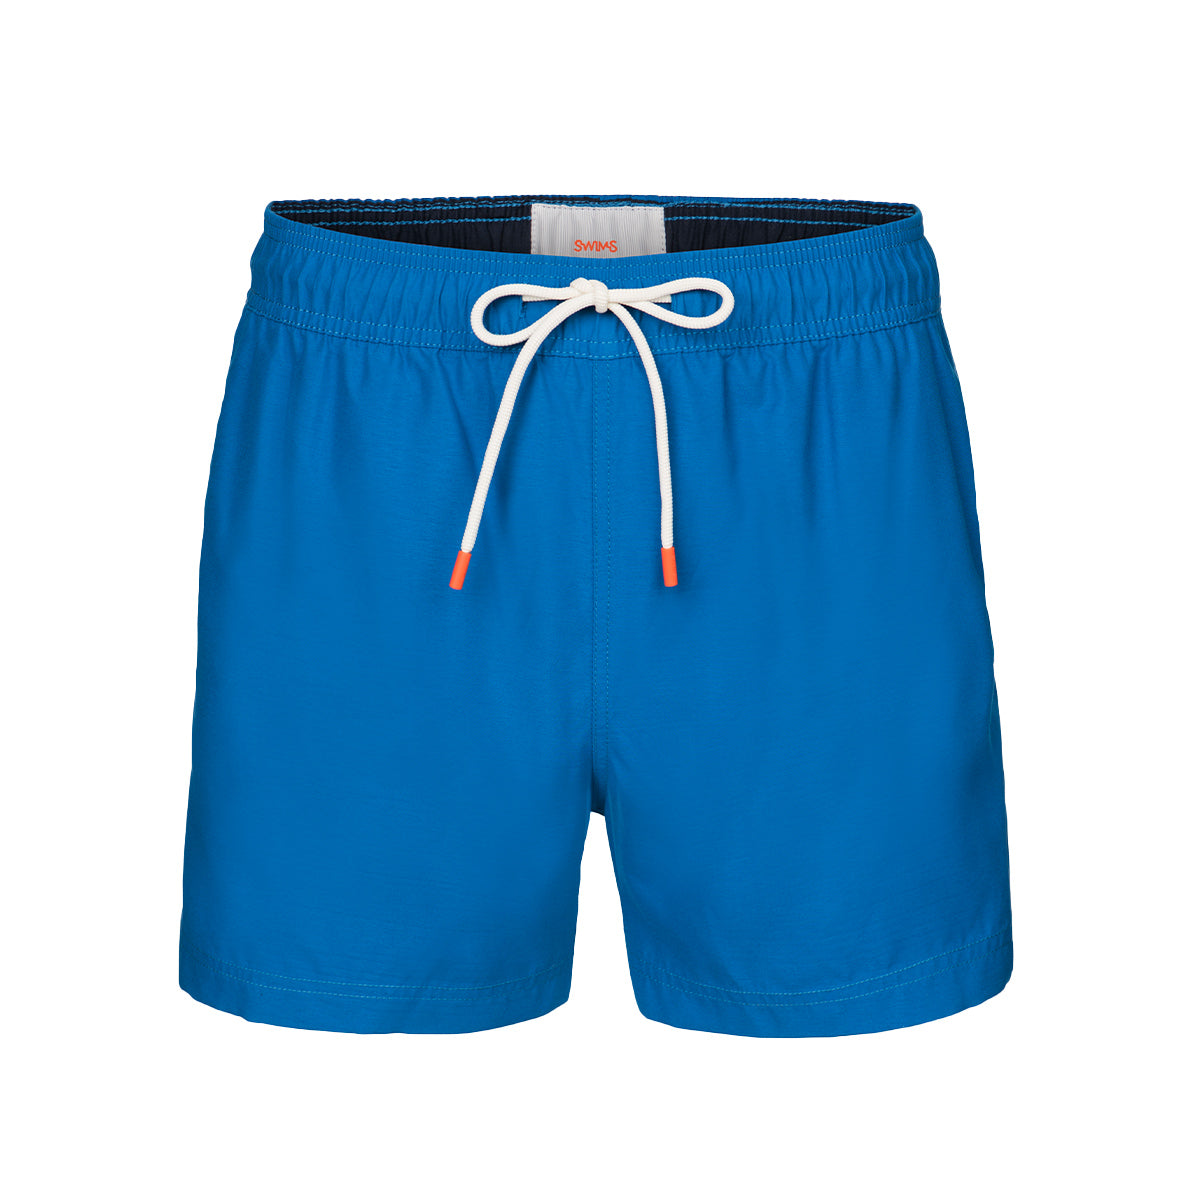 Gavitella Solid Bathing Shorts - background::white,variant::blue